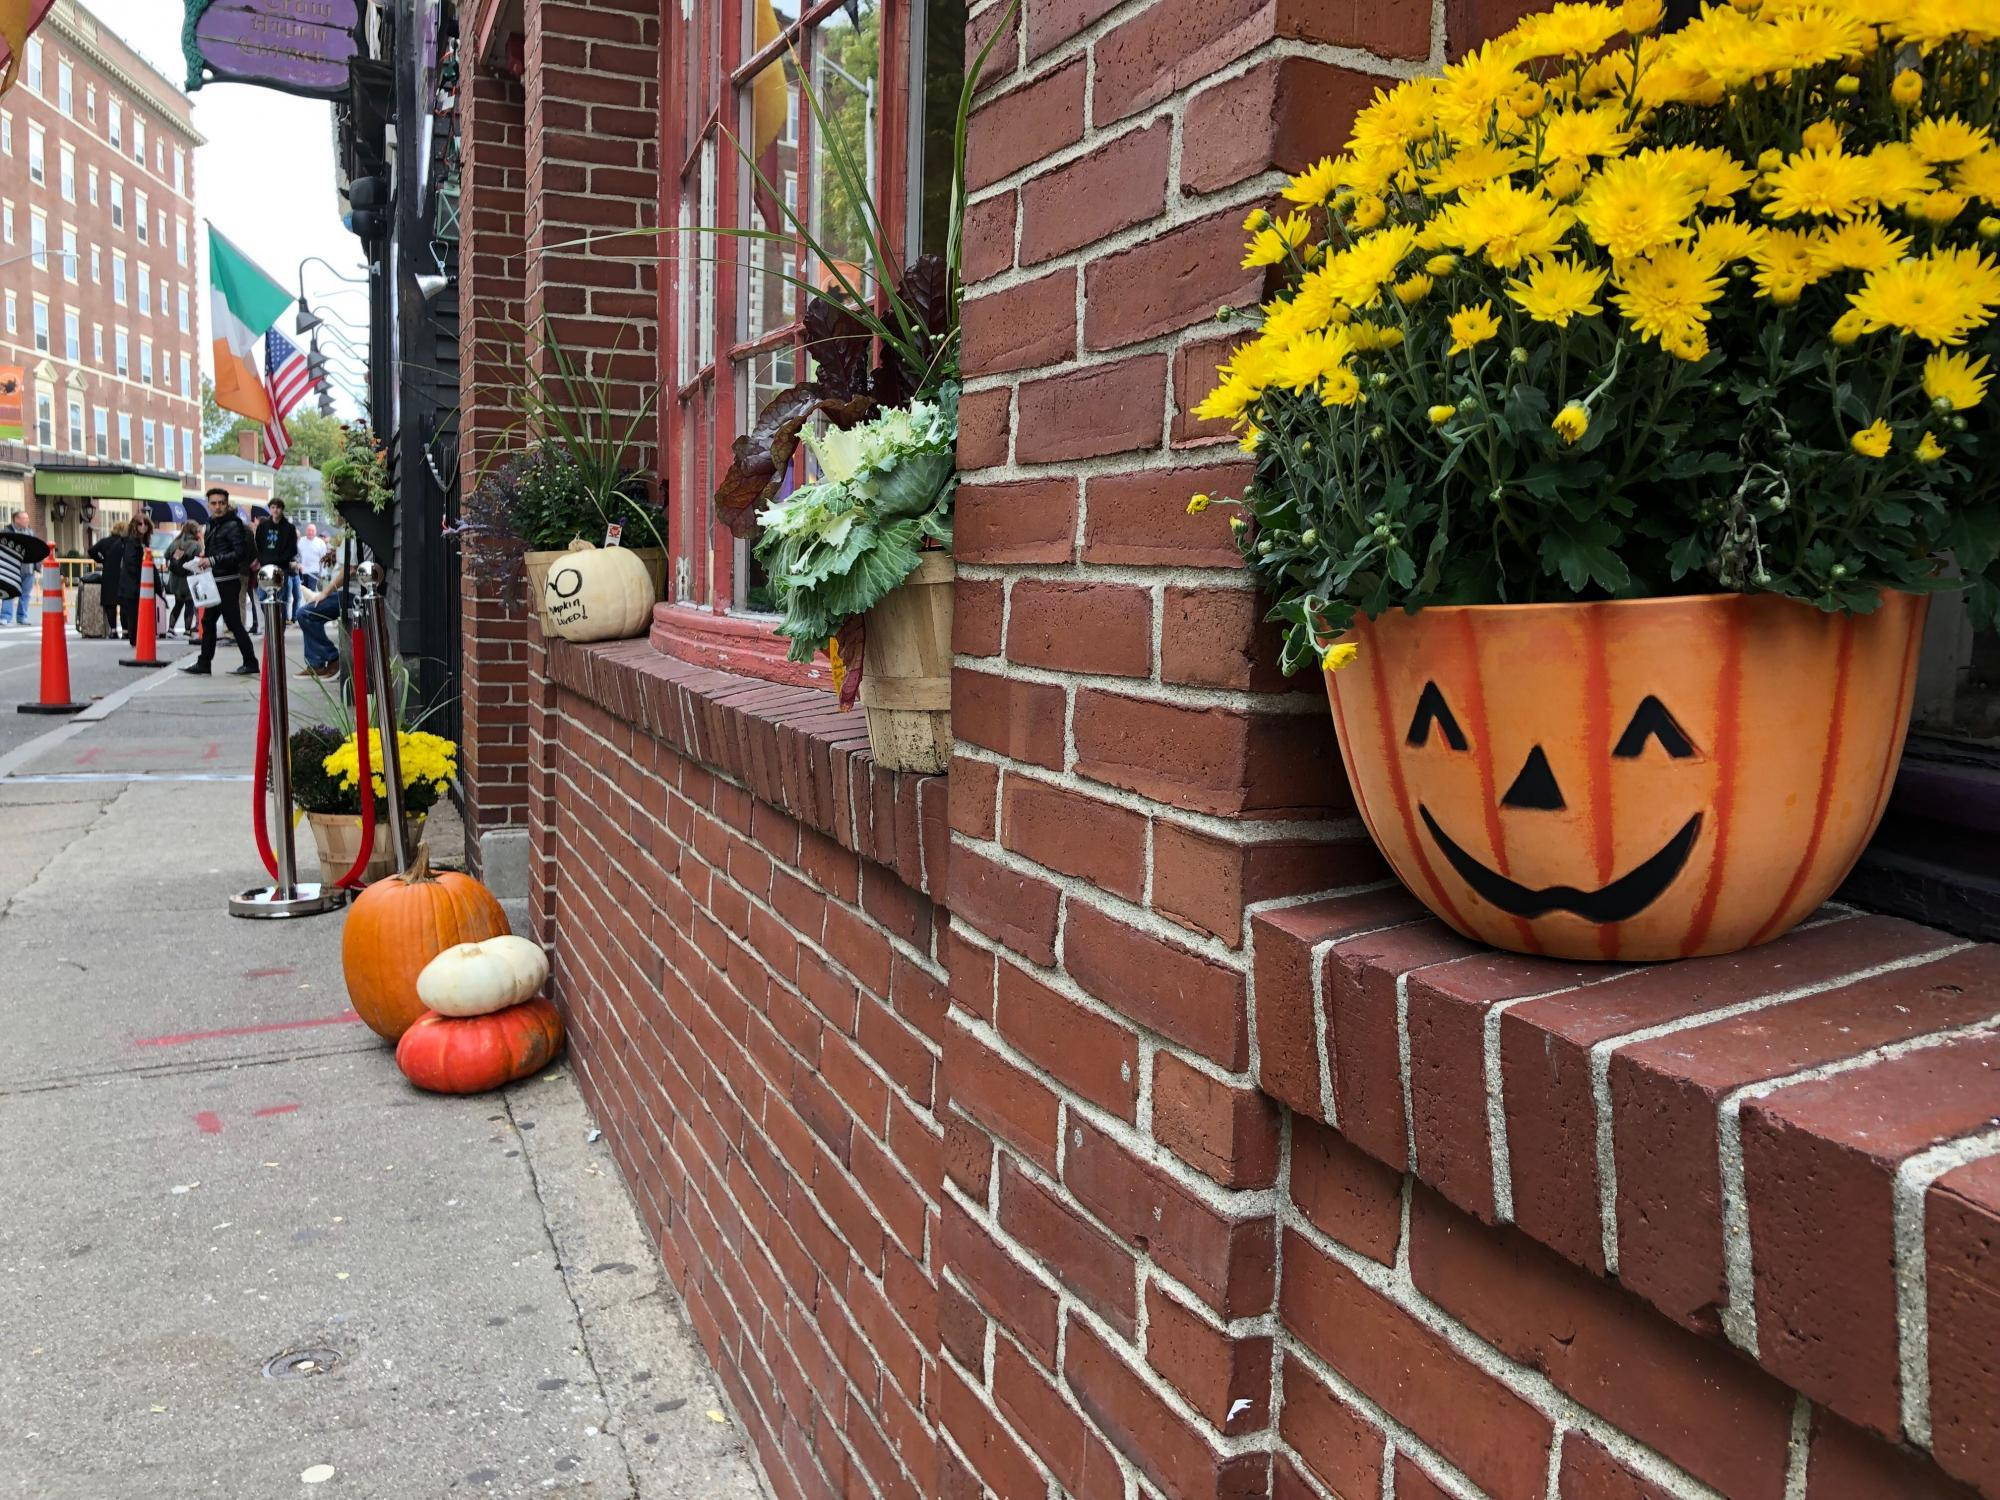 In Salem, a jack-o-lantern planter with flowers sits in a windowsill, with the weekend crowd in the background